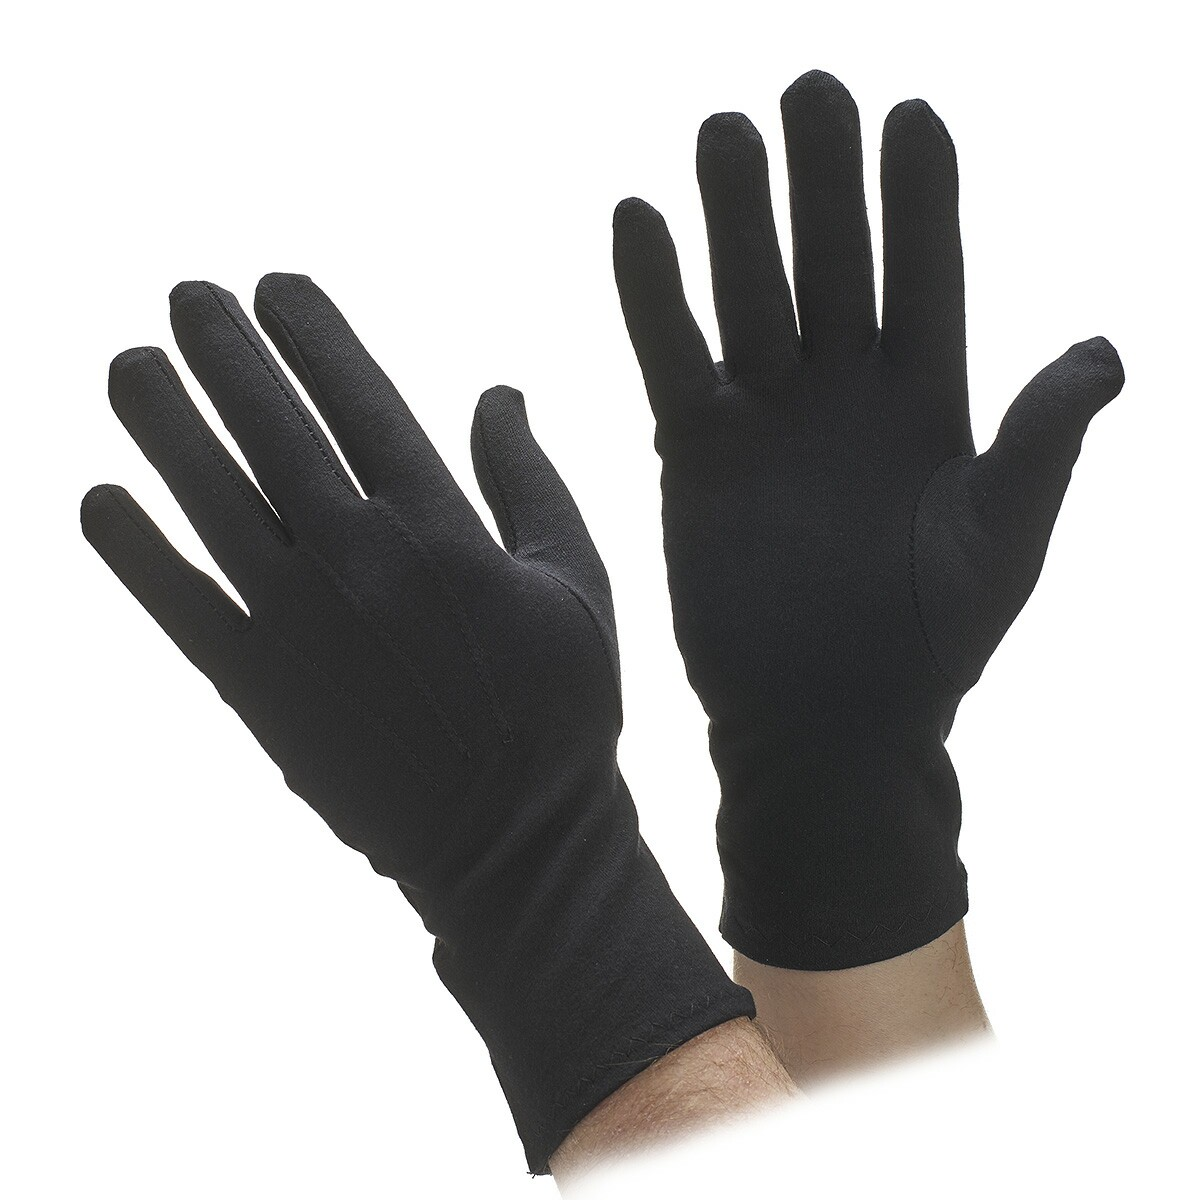 Large Details about  /12 Pairs 100/% Black Cotton Marching Parade Formal dress gloves